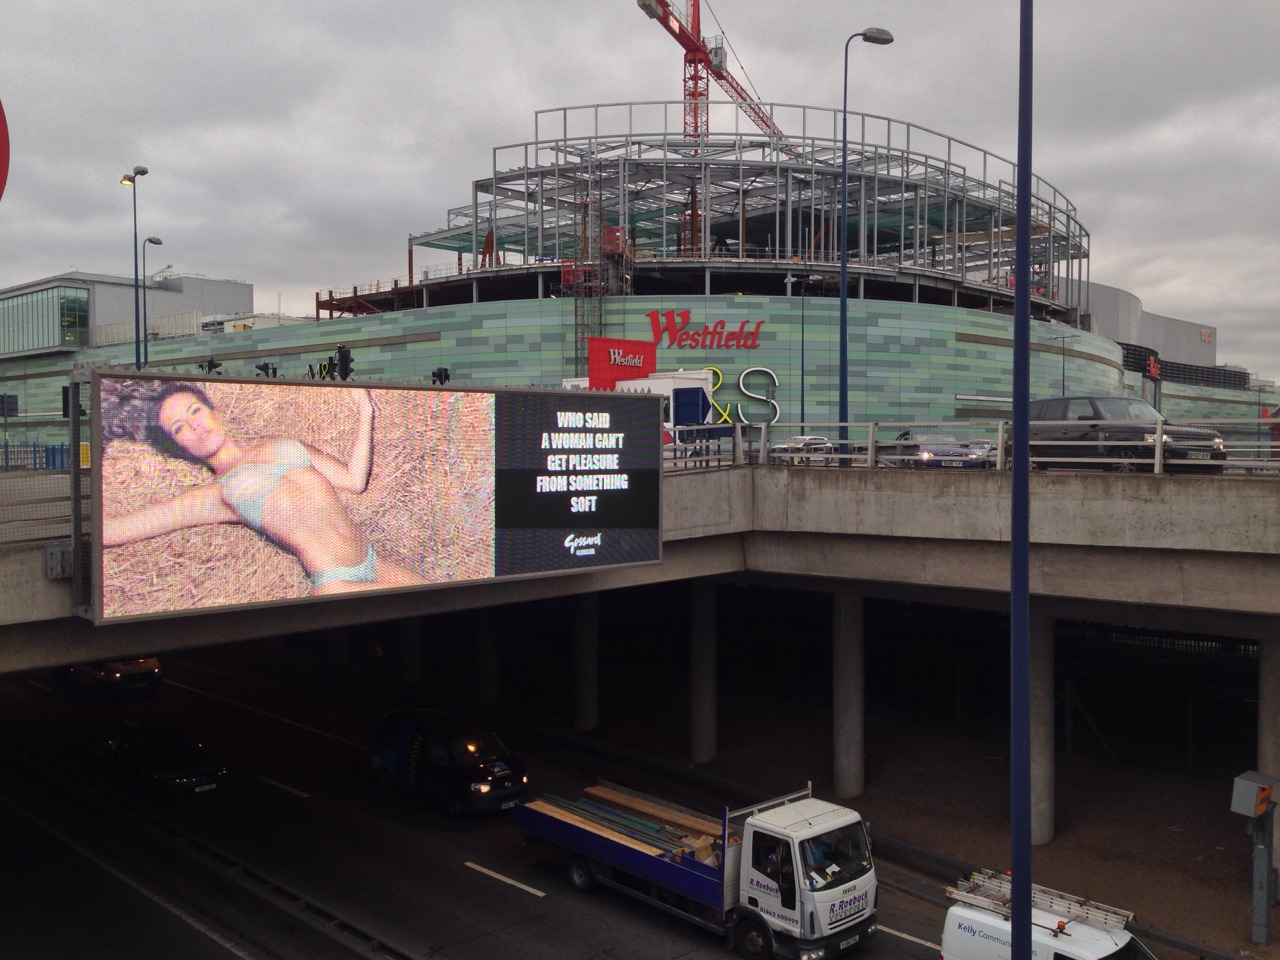 My Gossard UK billboard outside Westfield London shopping centre.